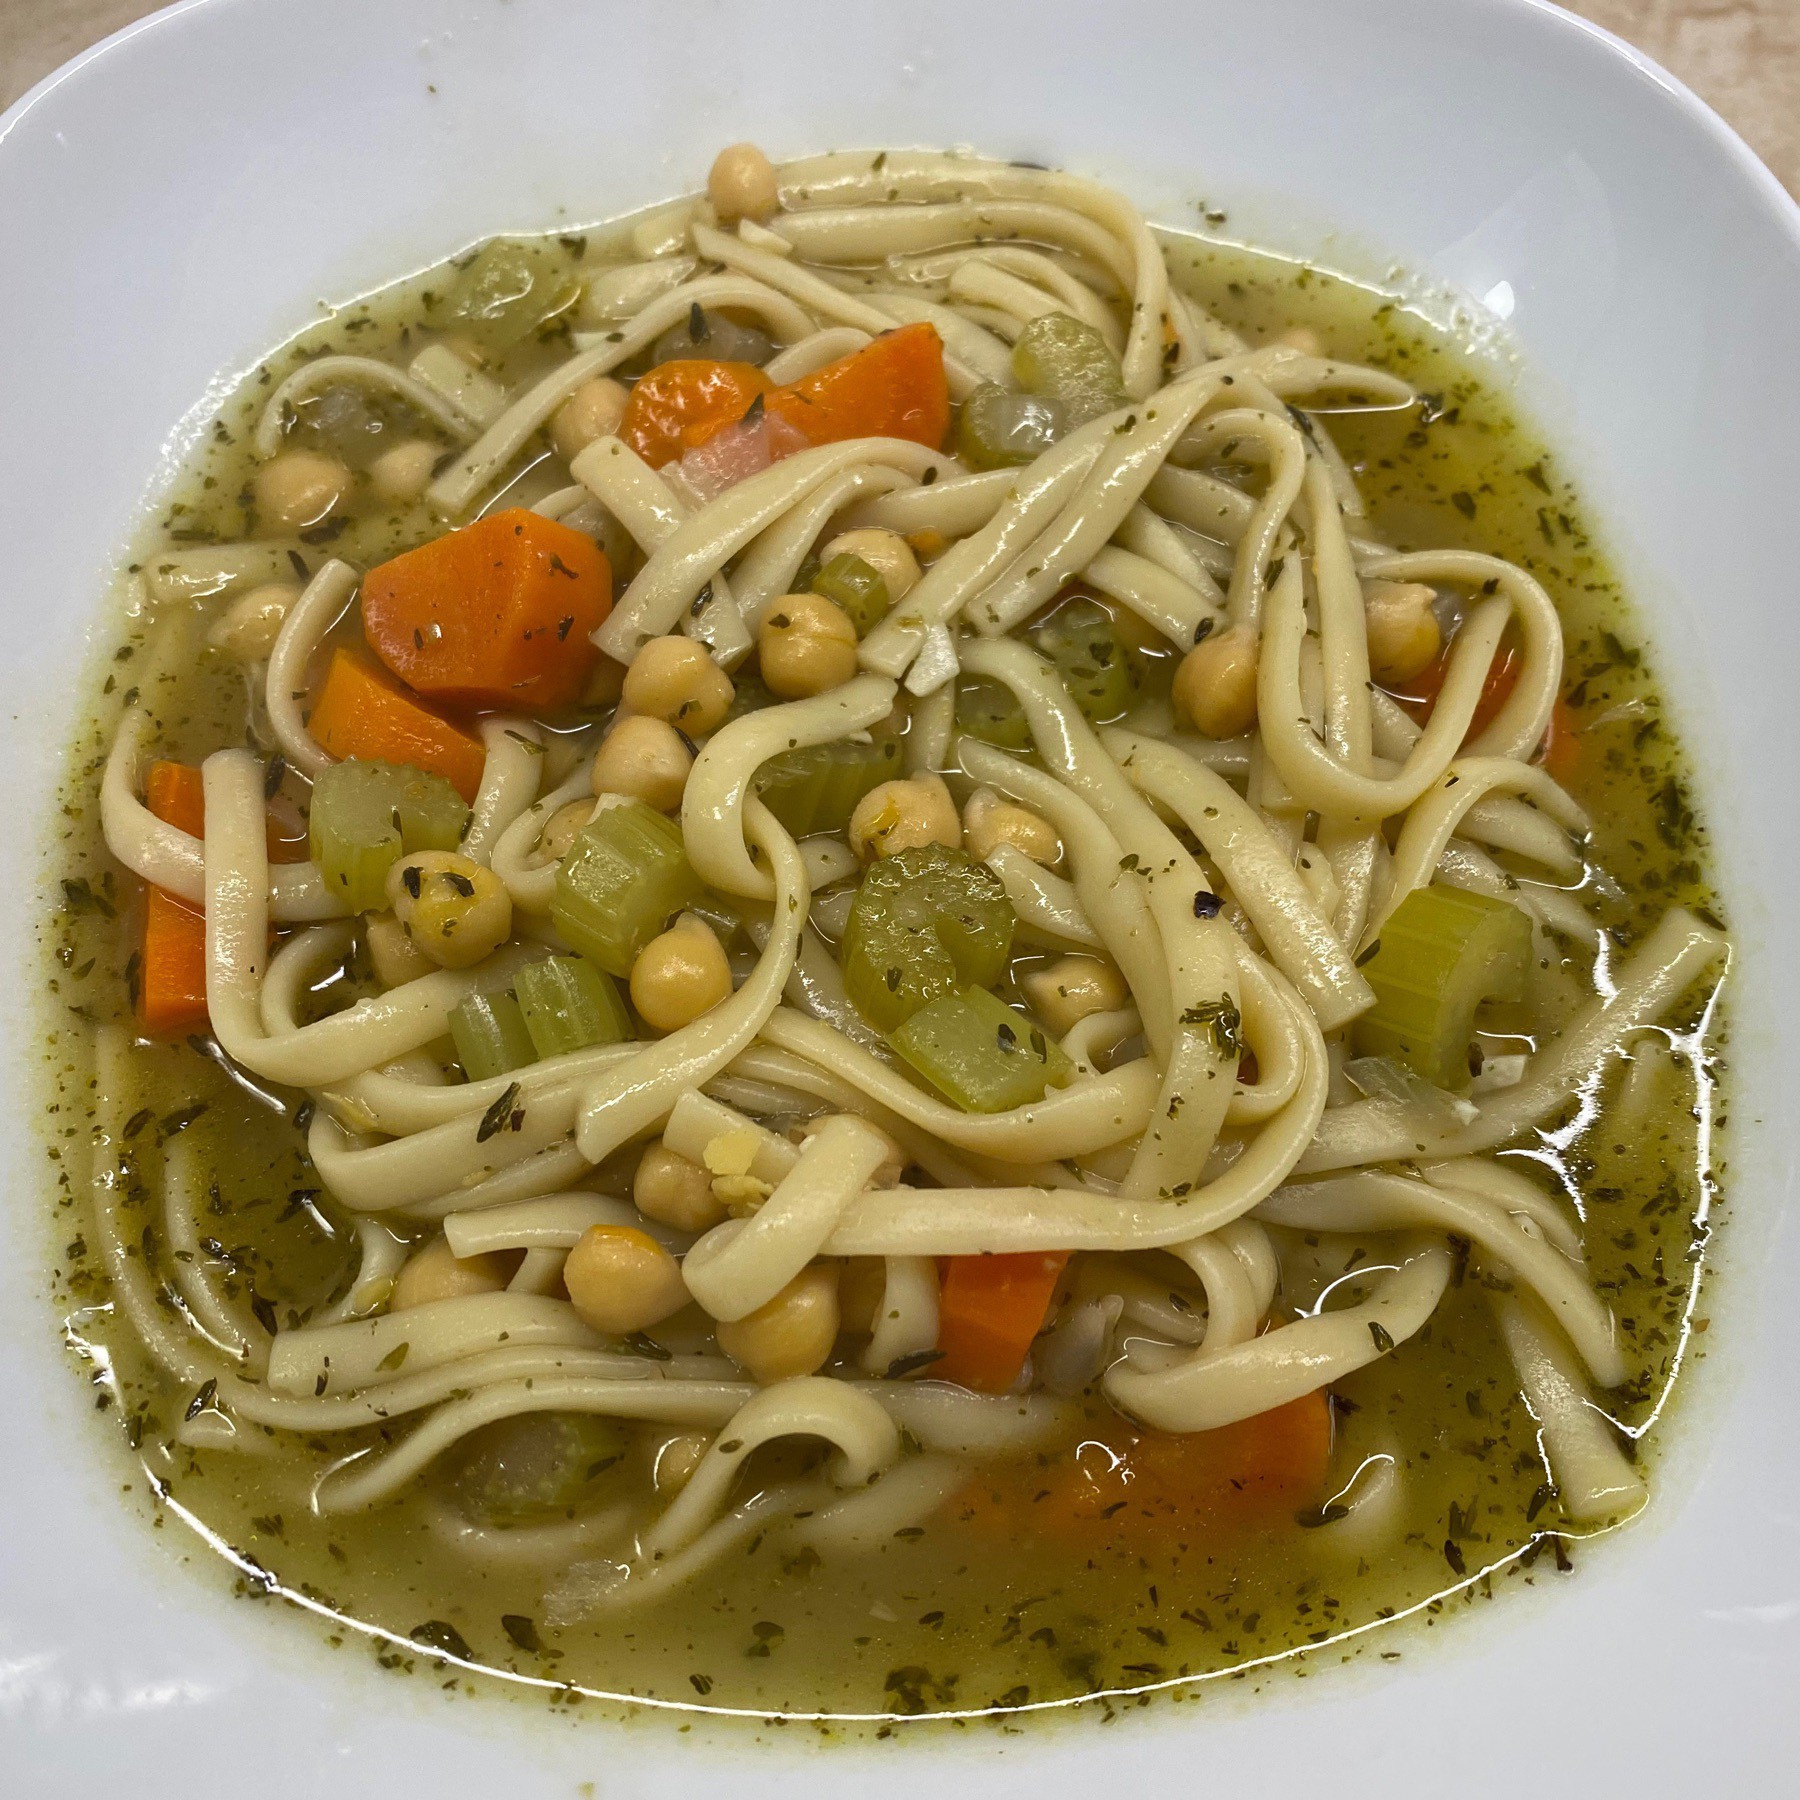 Bowl of soup with noodles, chickpeas, carrots, and celery.